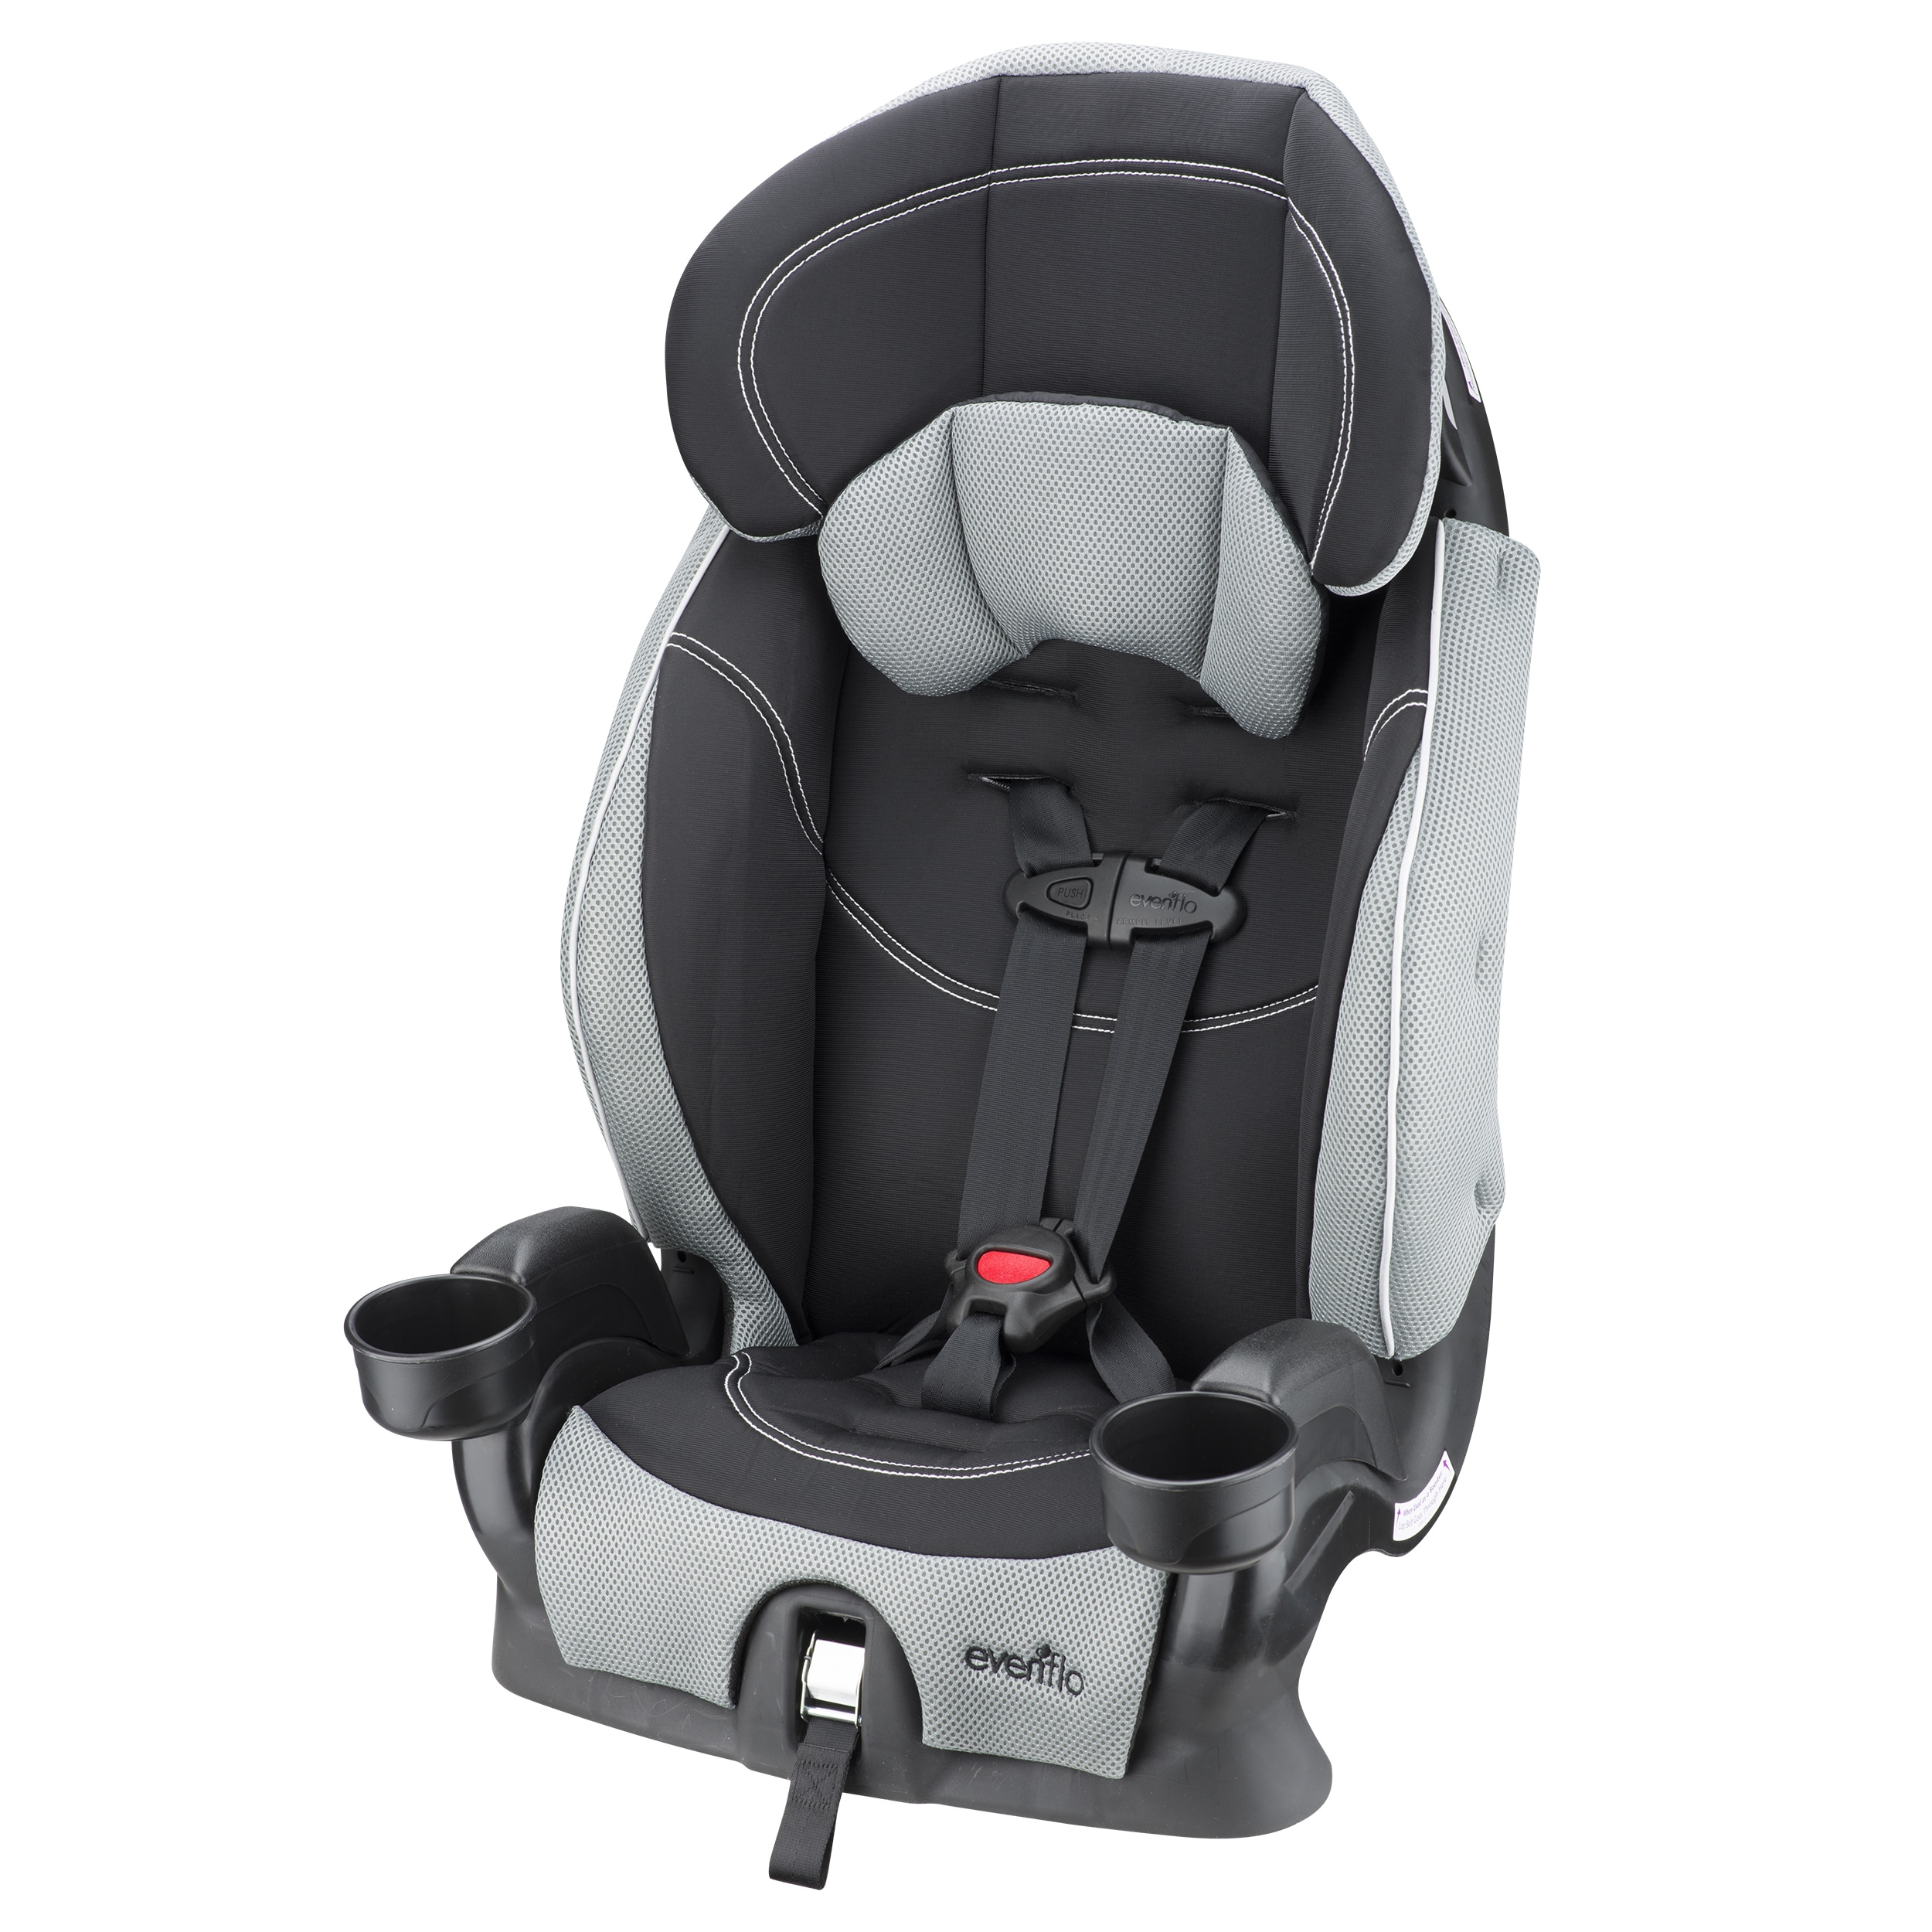 Evenflo Chase LX Booster Car Seat in Jameson (Jameson), Grey